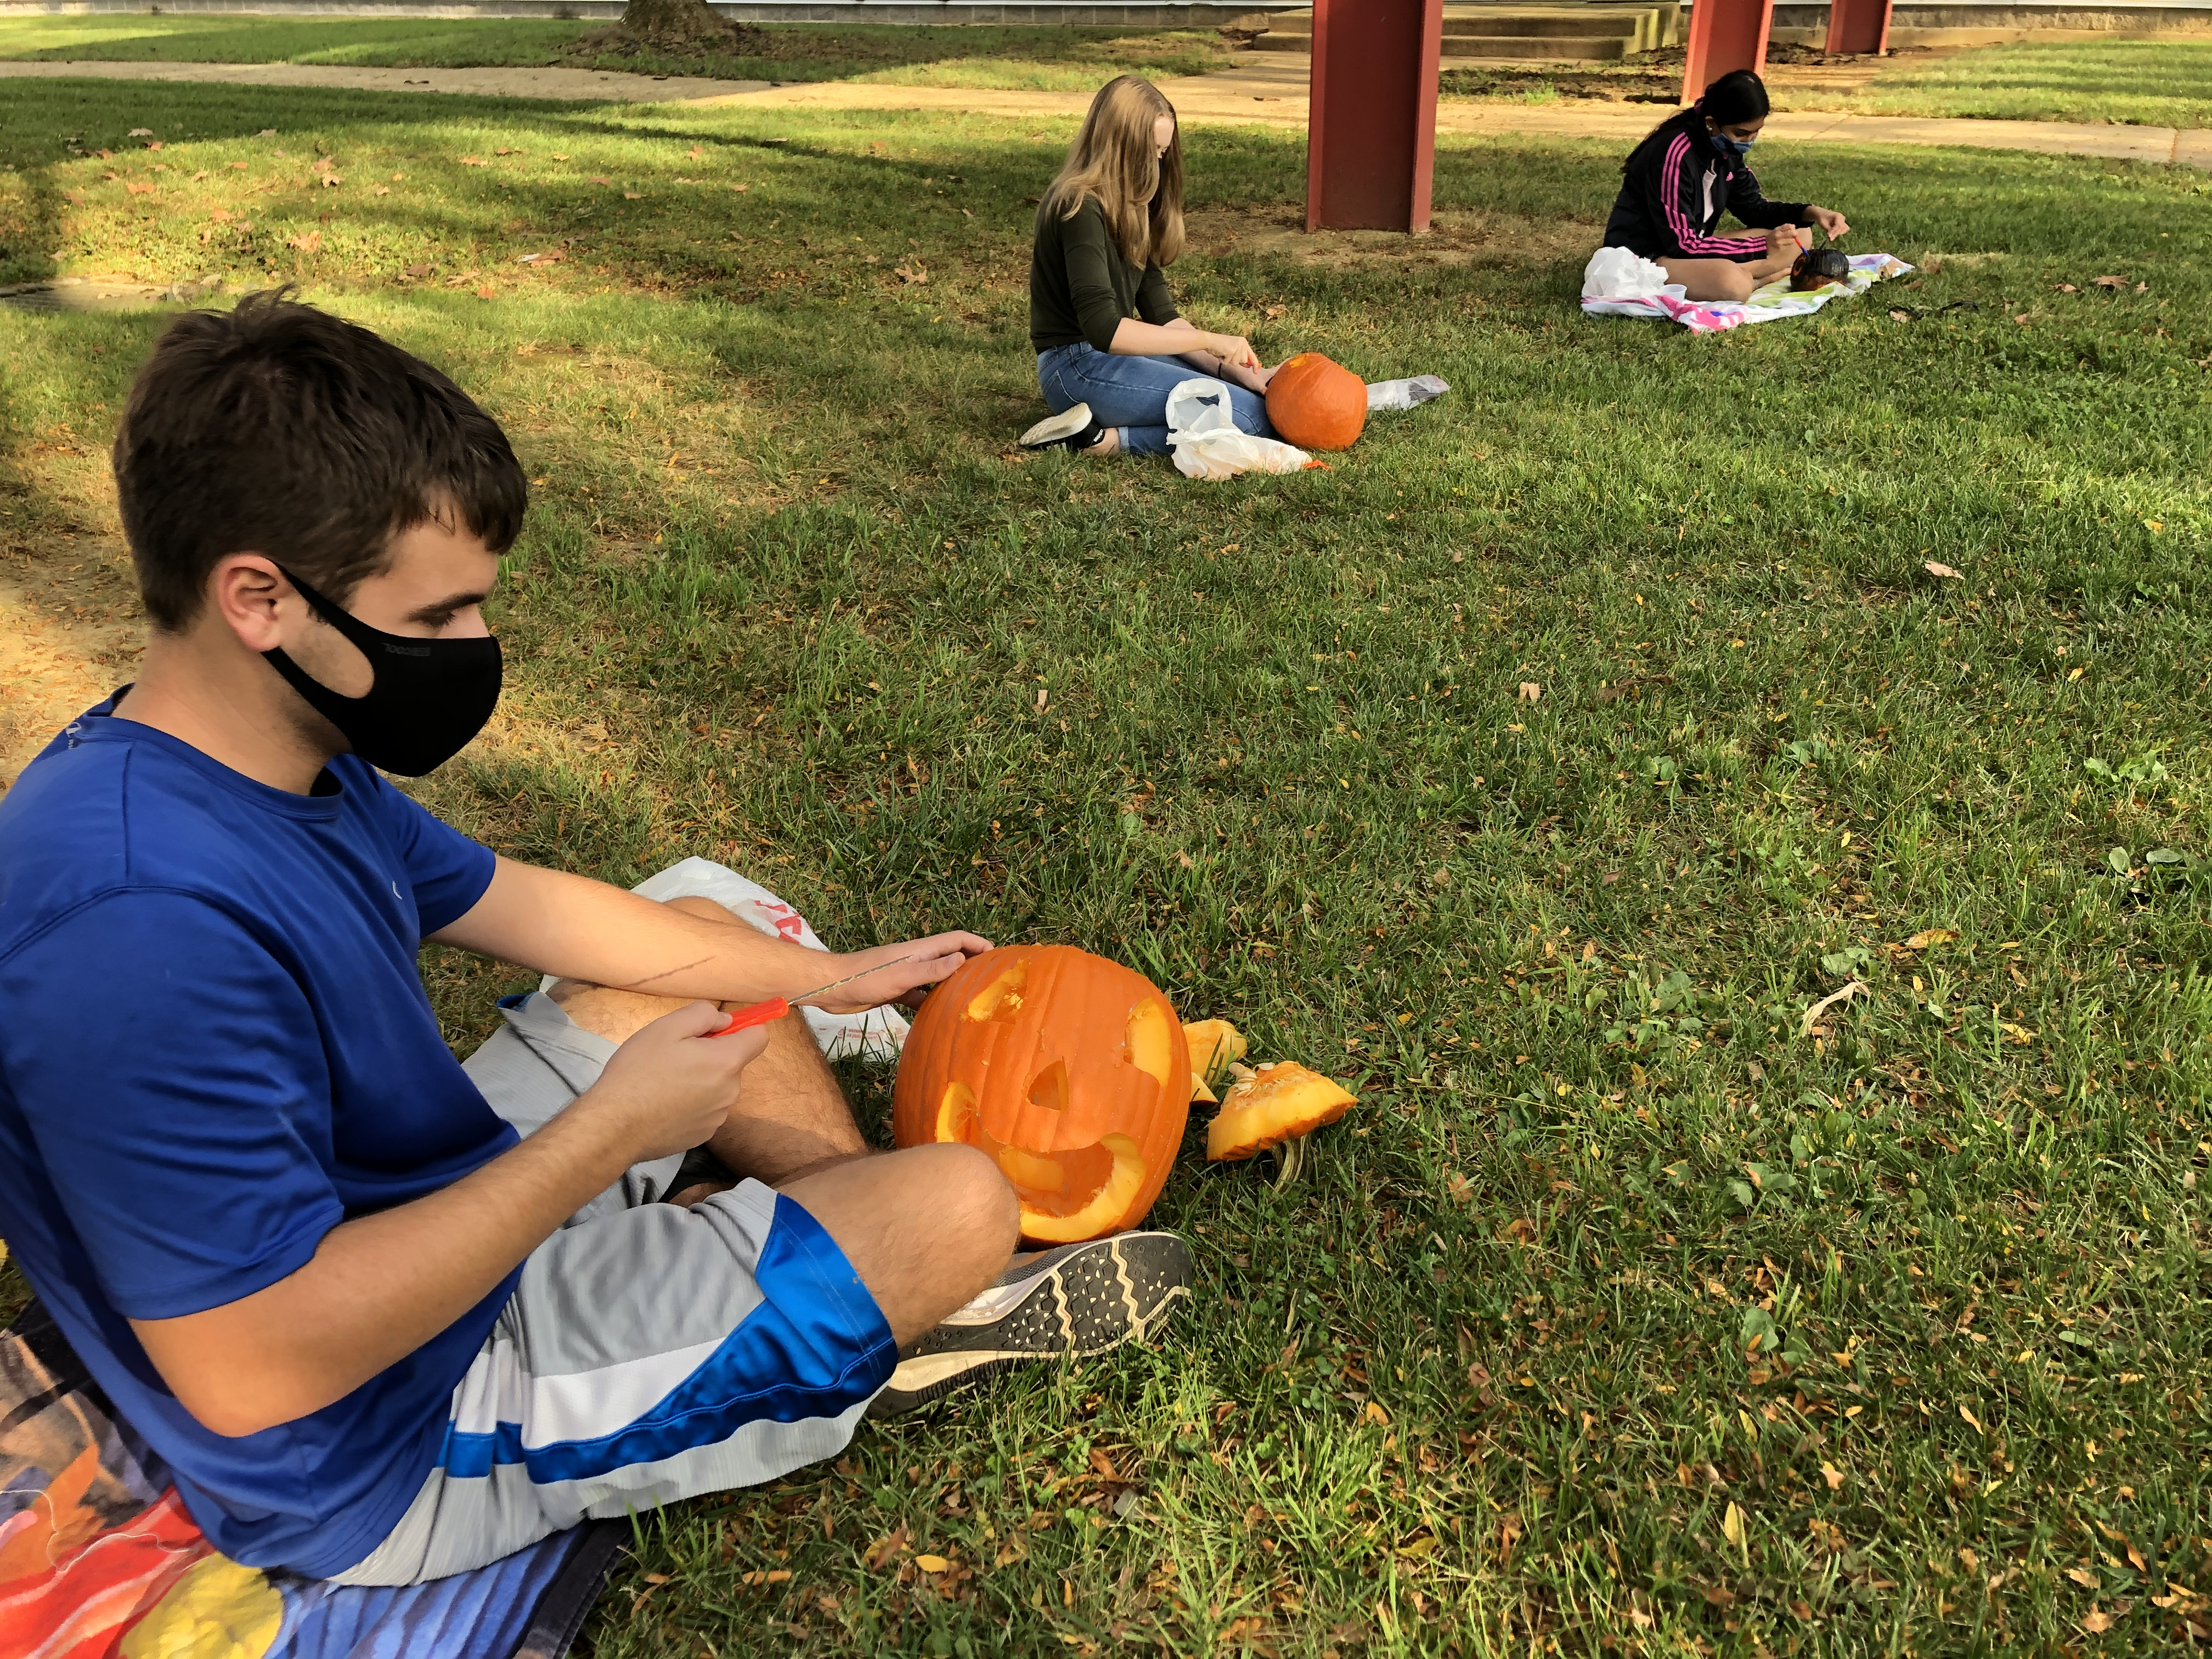 a boy and two girls sitting spaced apart in the grass with pumpkins